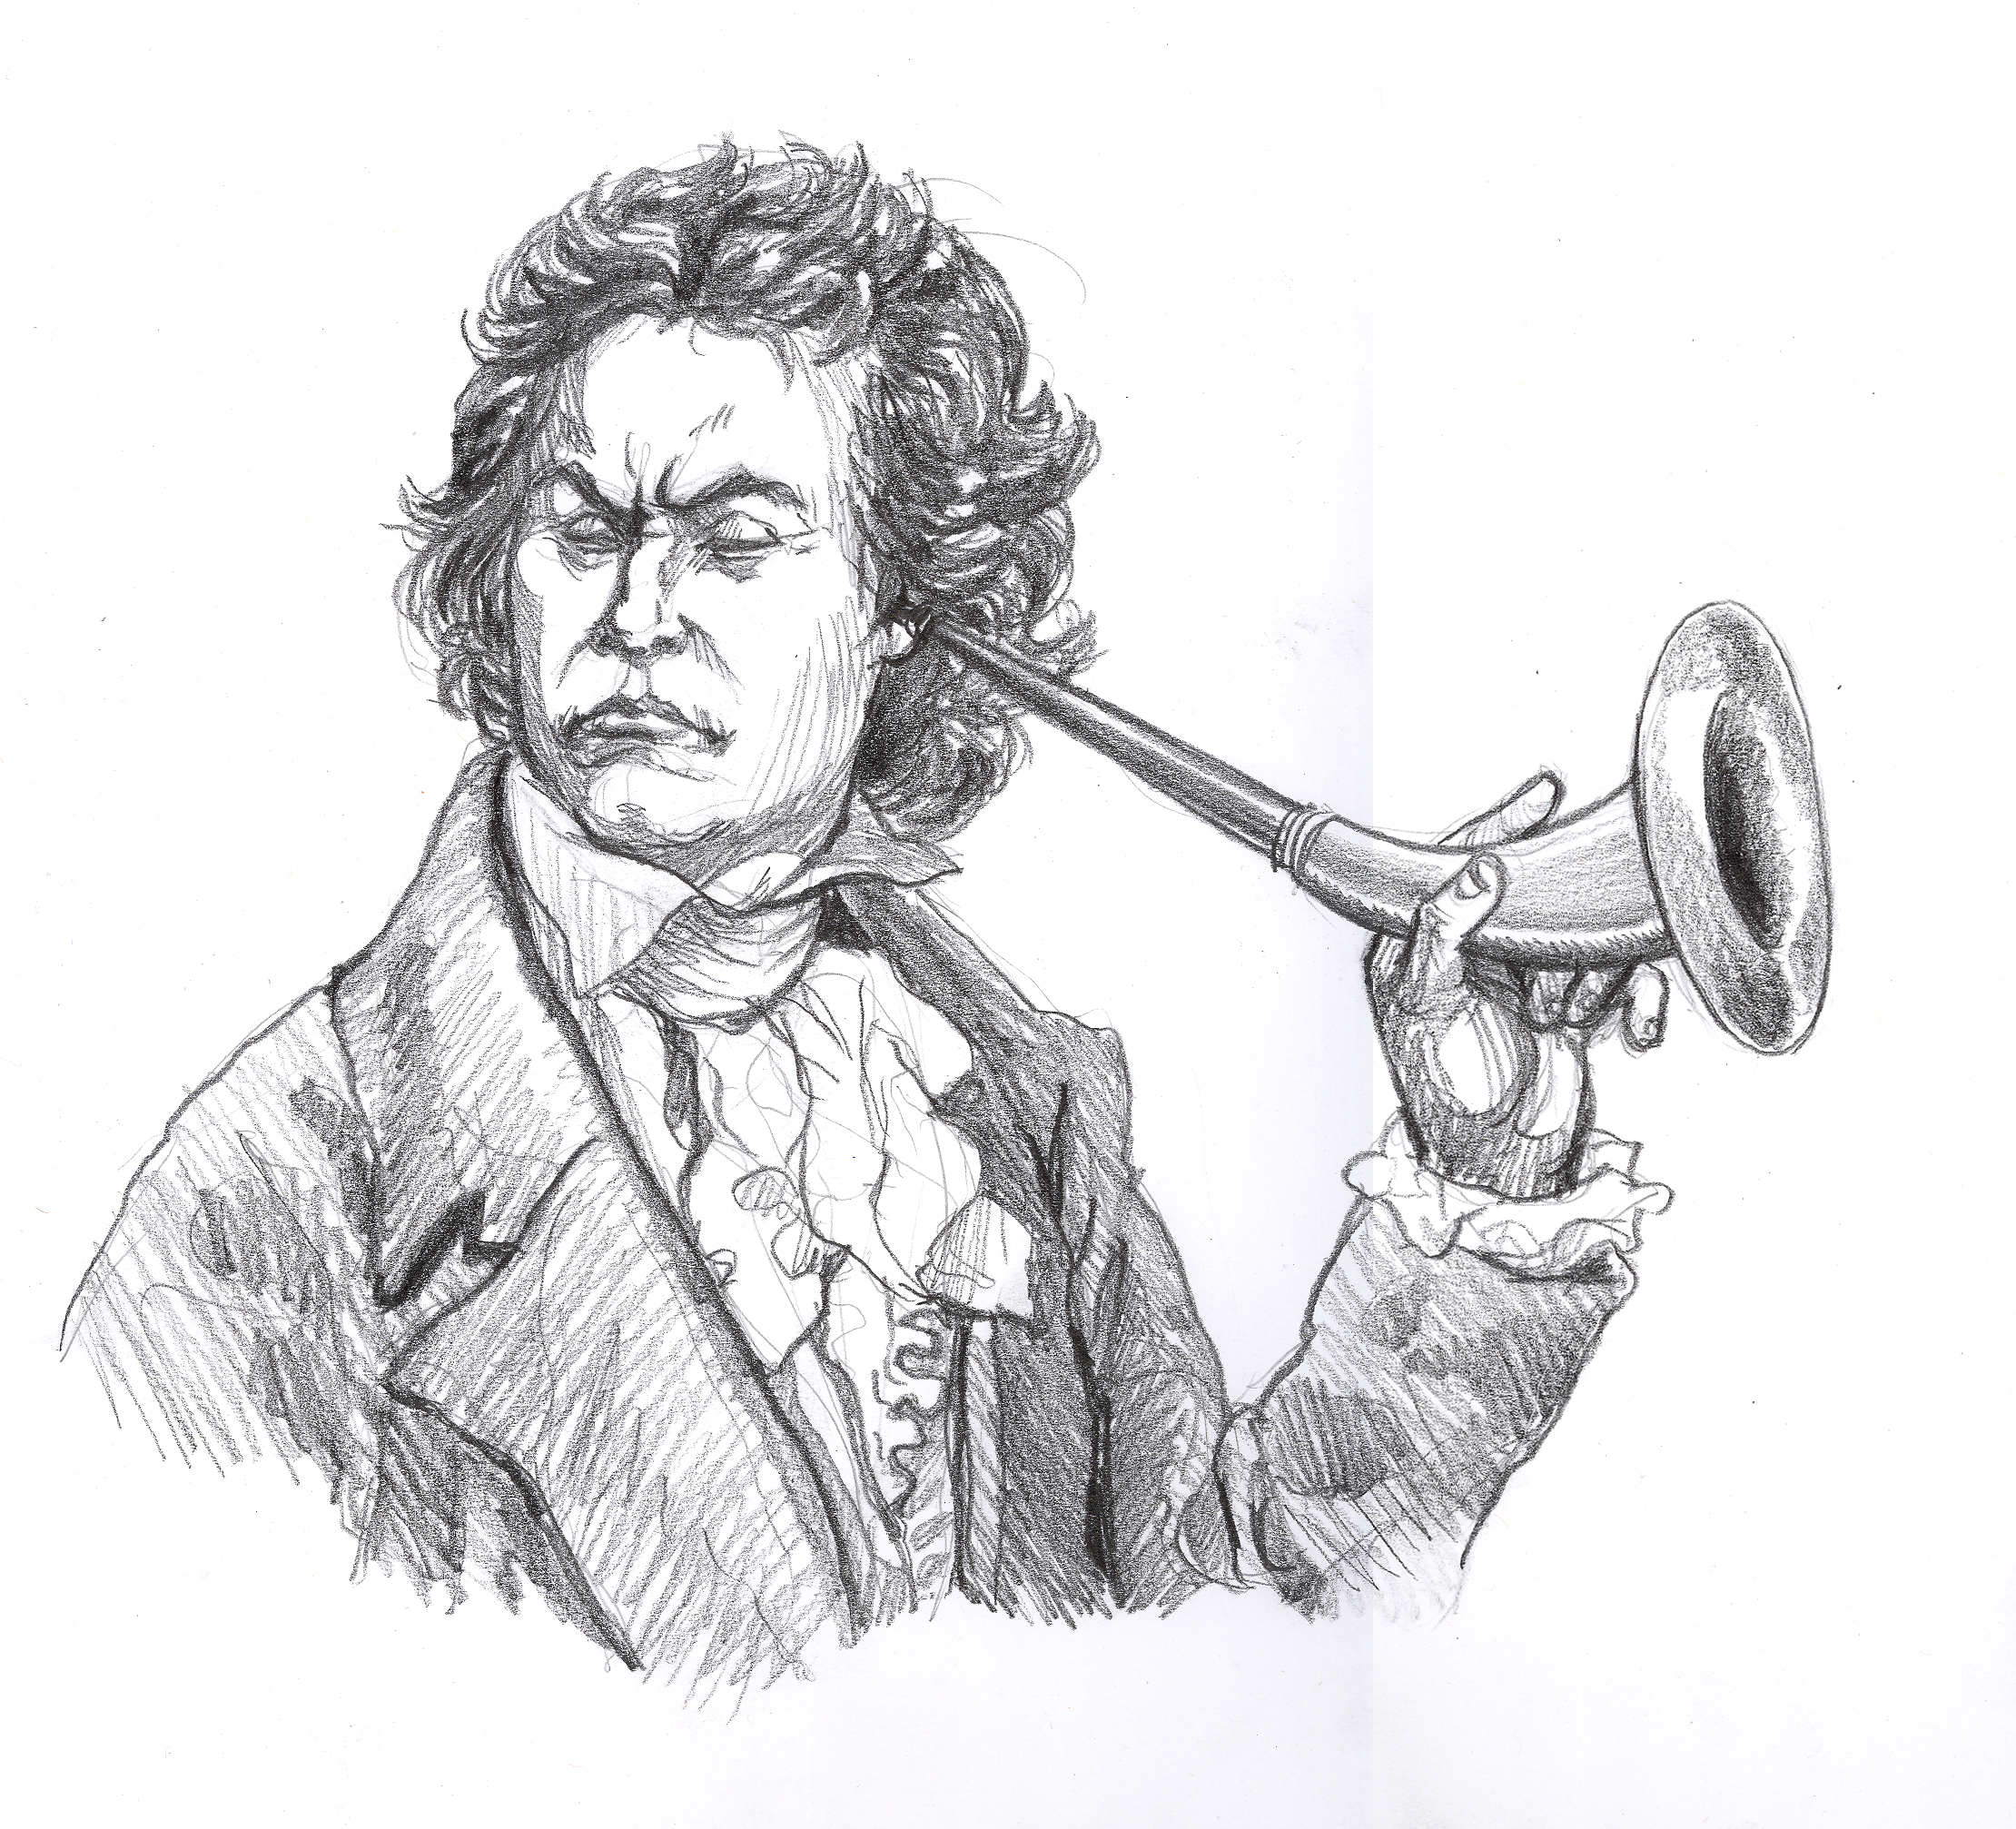 Saxophone in addition Person Born With Tail additionally Crow Sitting On Skull Tattoo On Leg together with 302 El Narval Extrano Unicornio Marino further Orchestrating Your Pr And  munications 3 Lessons From Ludwig Van Beethoven. on old horns cartoon